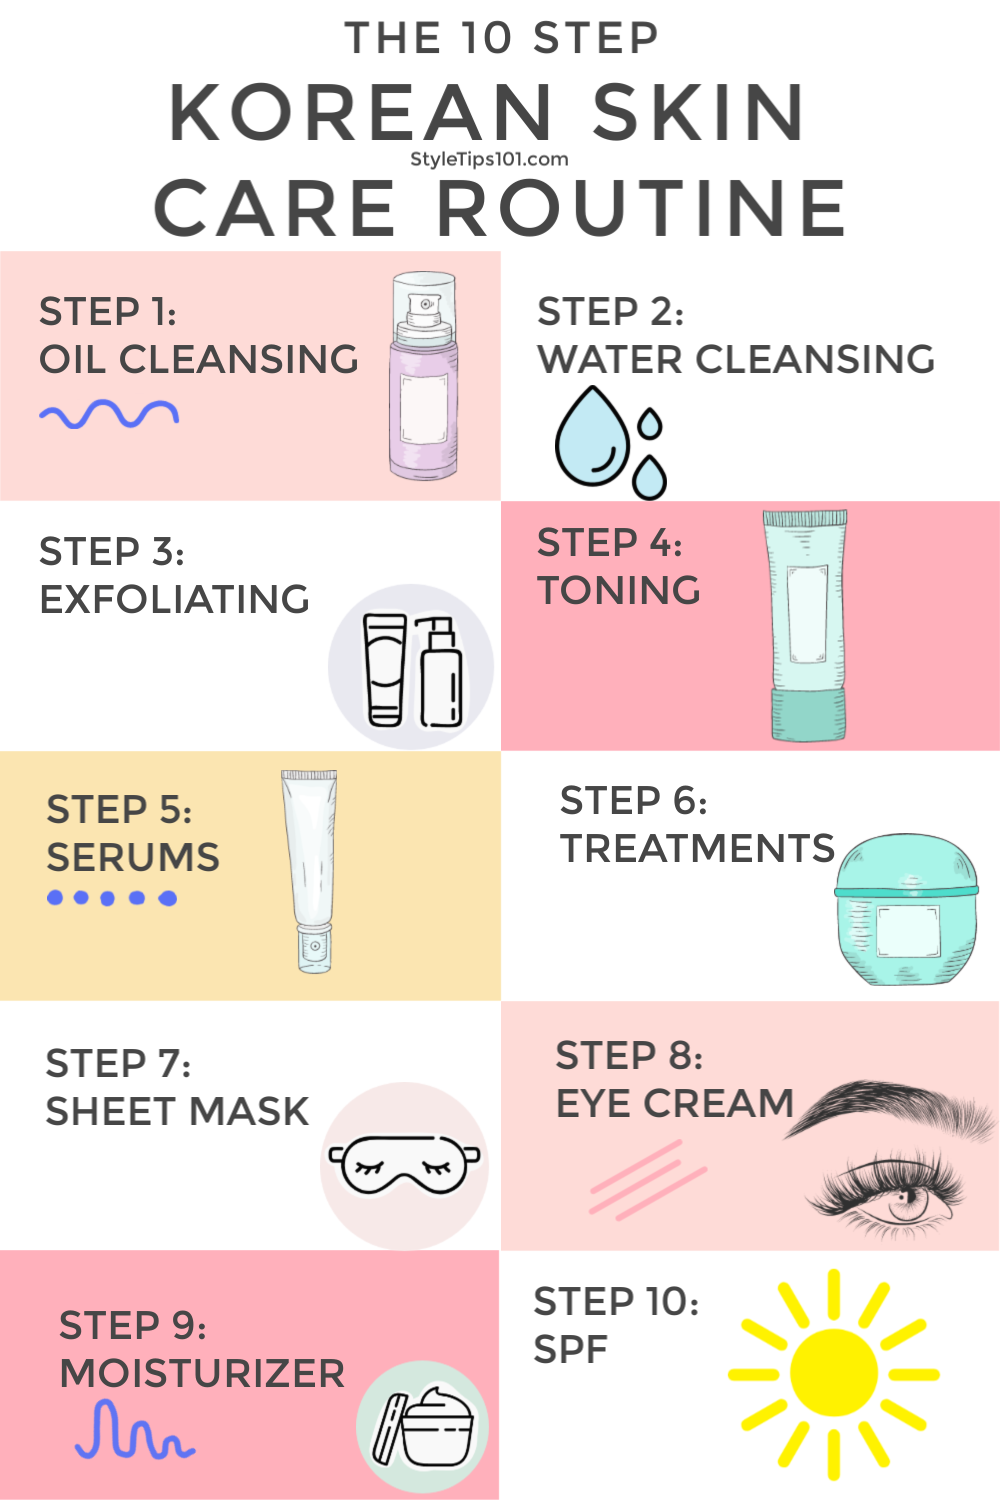 The Correct Order Of Skin Care Products Korean Skin Care Routine Care Correct Order Product Skin Care Routine Steps Skin Care Korean Skincare Routine